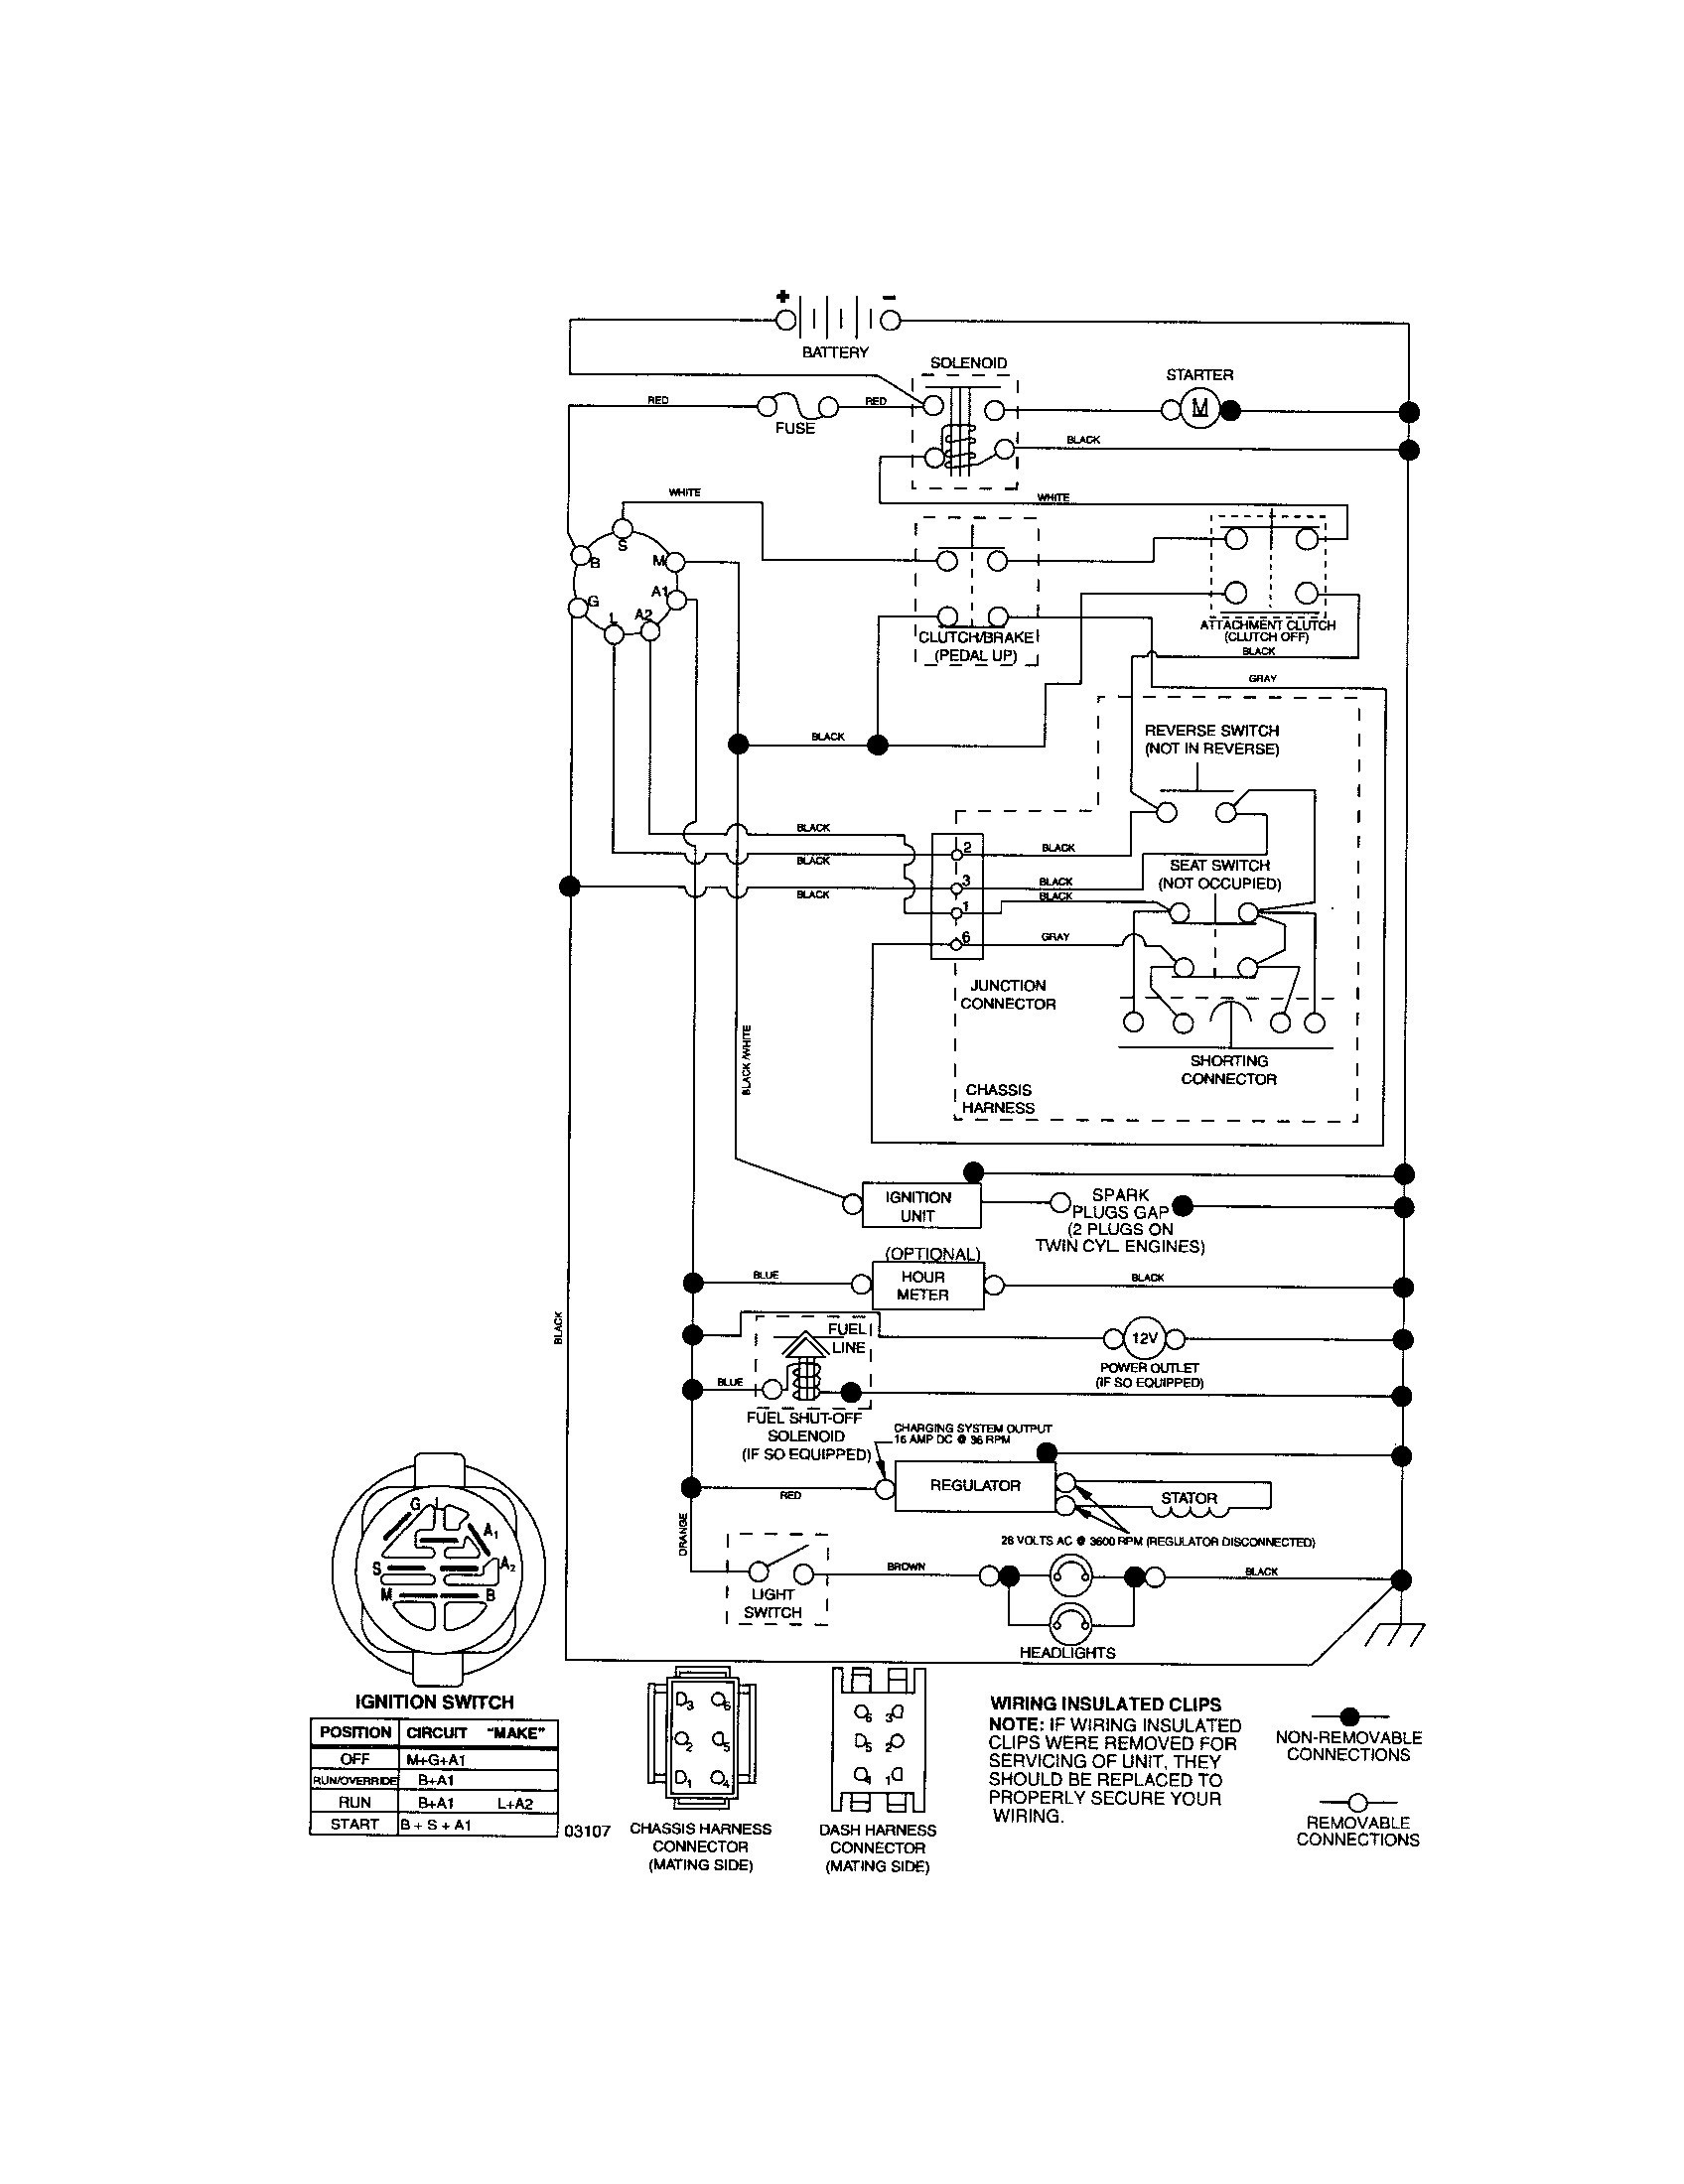 sears lawn tractor wiring diagram Download-Wiring Diagram for Yardman Riding Mower Fresh Craftsman Riding Mower Wiring Diagram 15-d